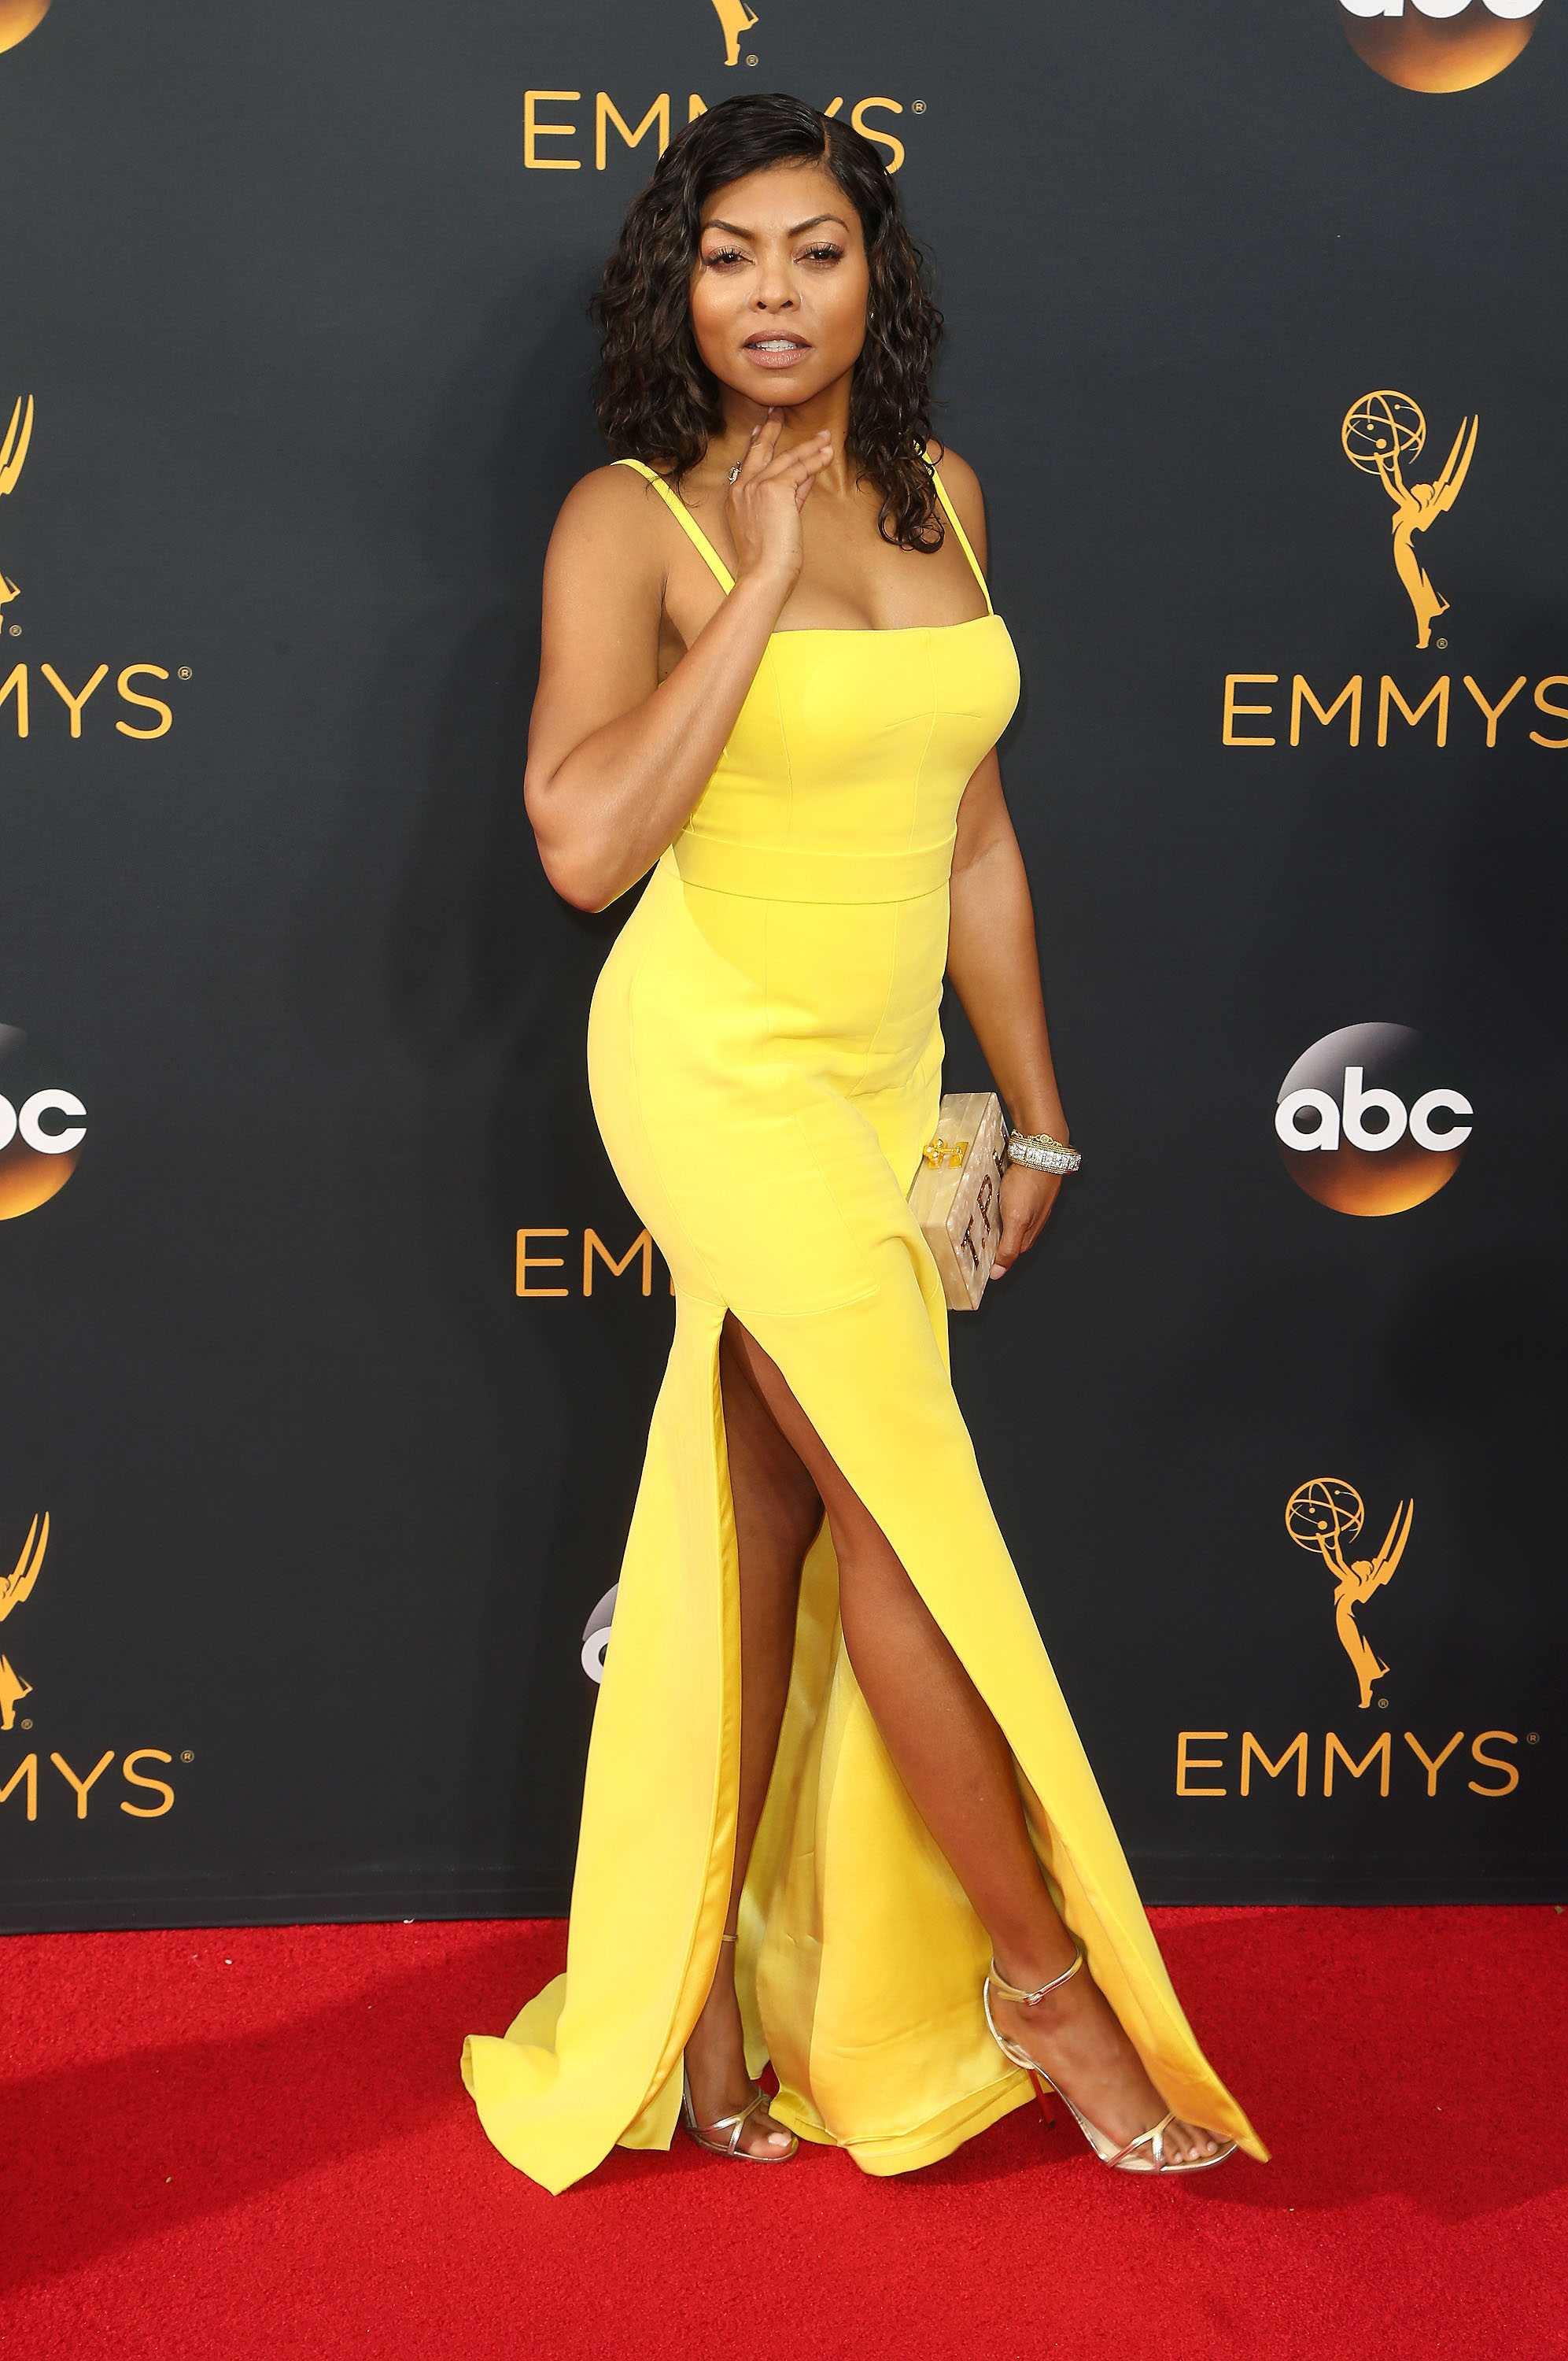 September 18, 2016 - Los Angeles, CA, United States - 18 September 2016 - Los Angeles, California - Taraji P. Henson. 68th Annual Primetime Emmy Awards held at Microsoft Theater. Photo Credit: AdMedia.   September 18, 2016